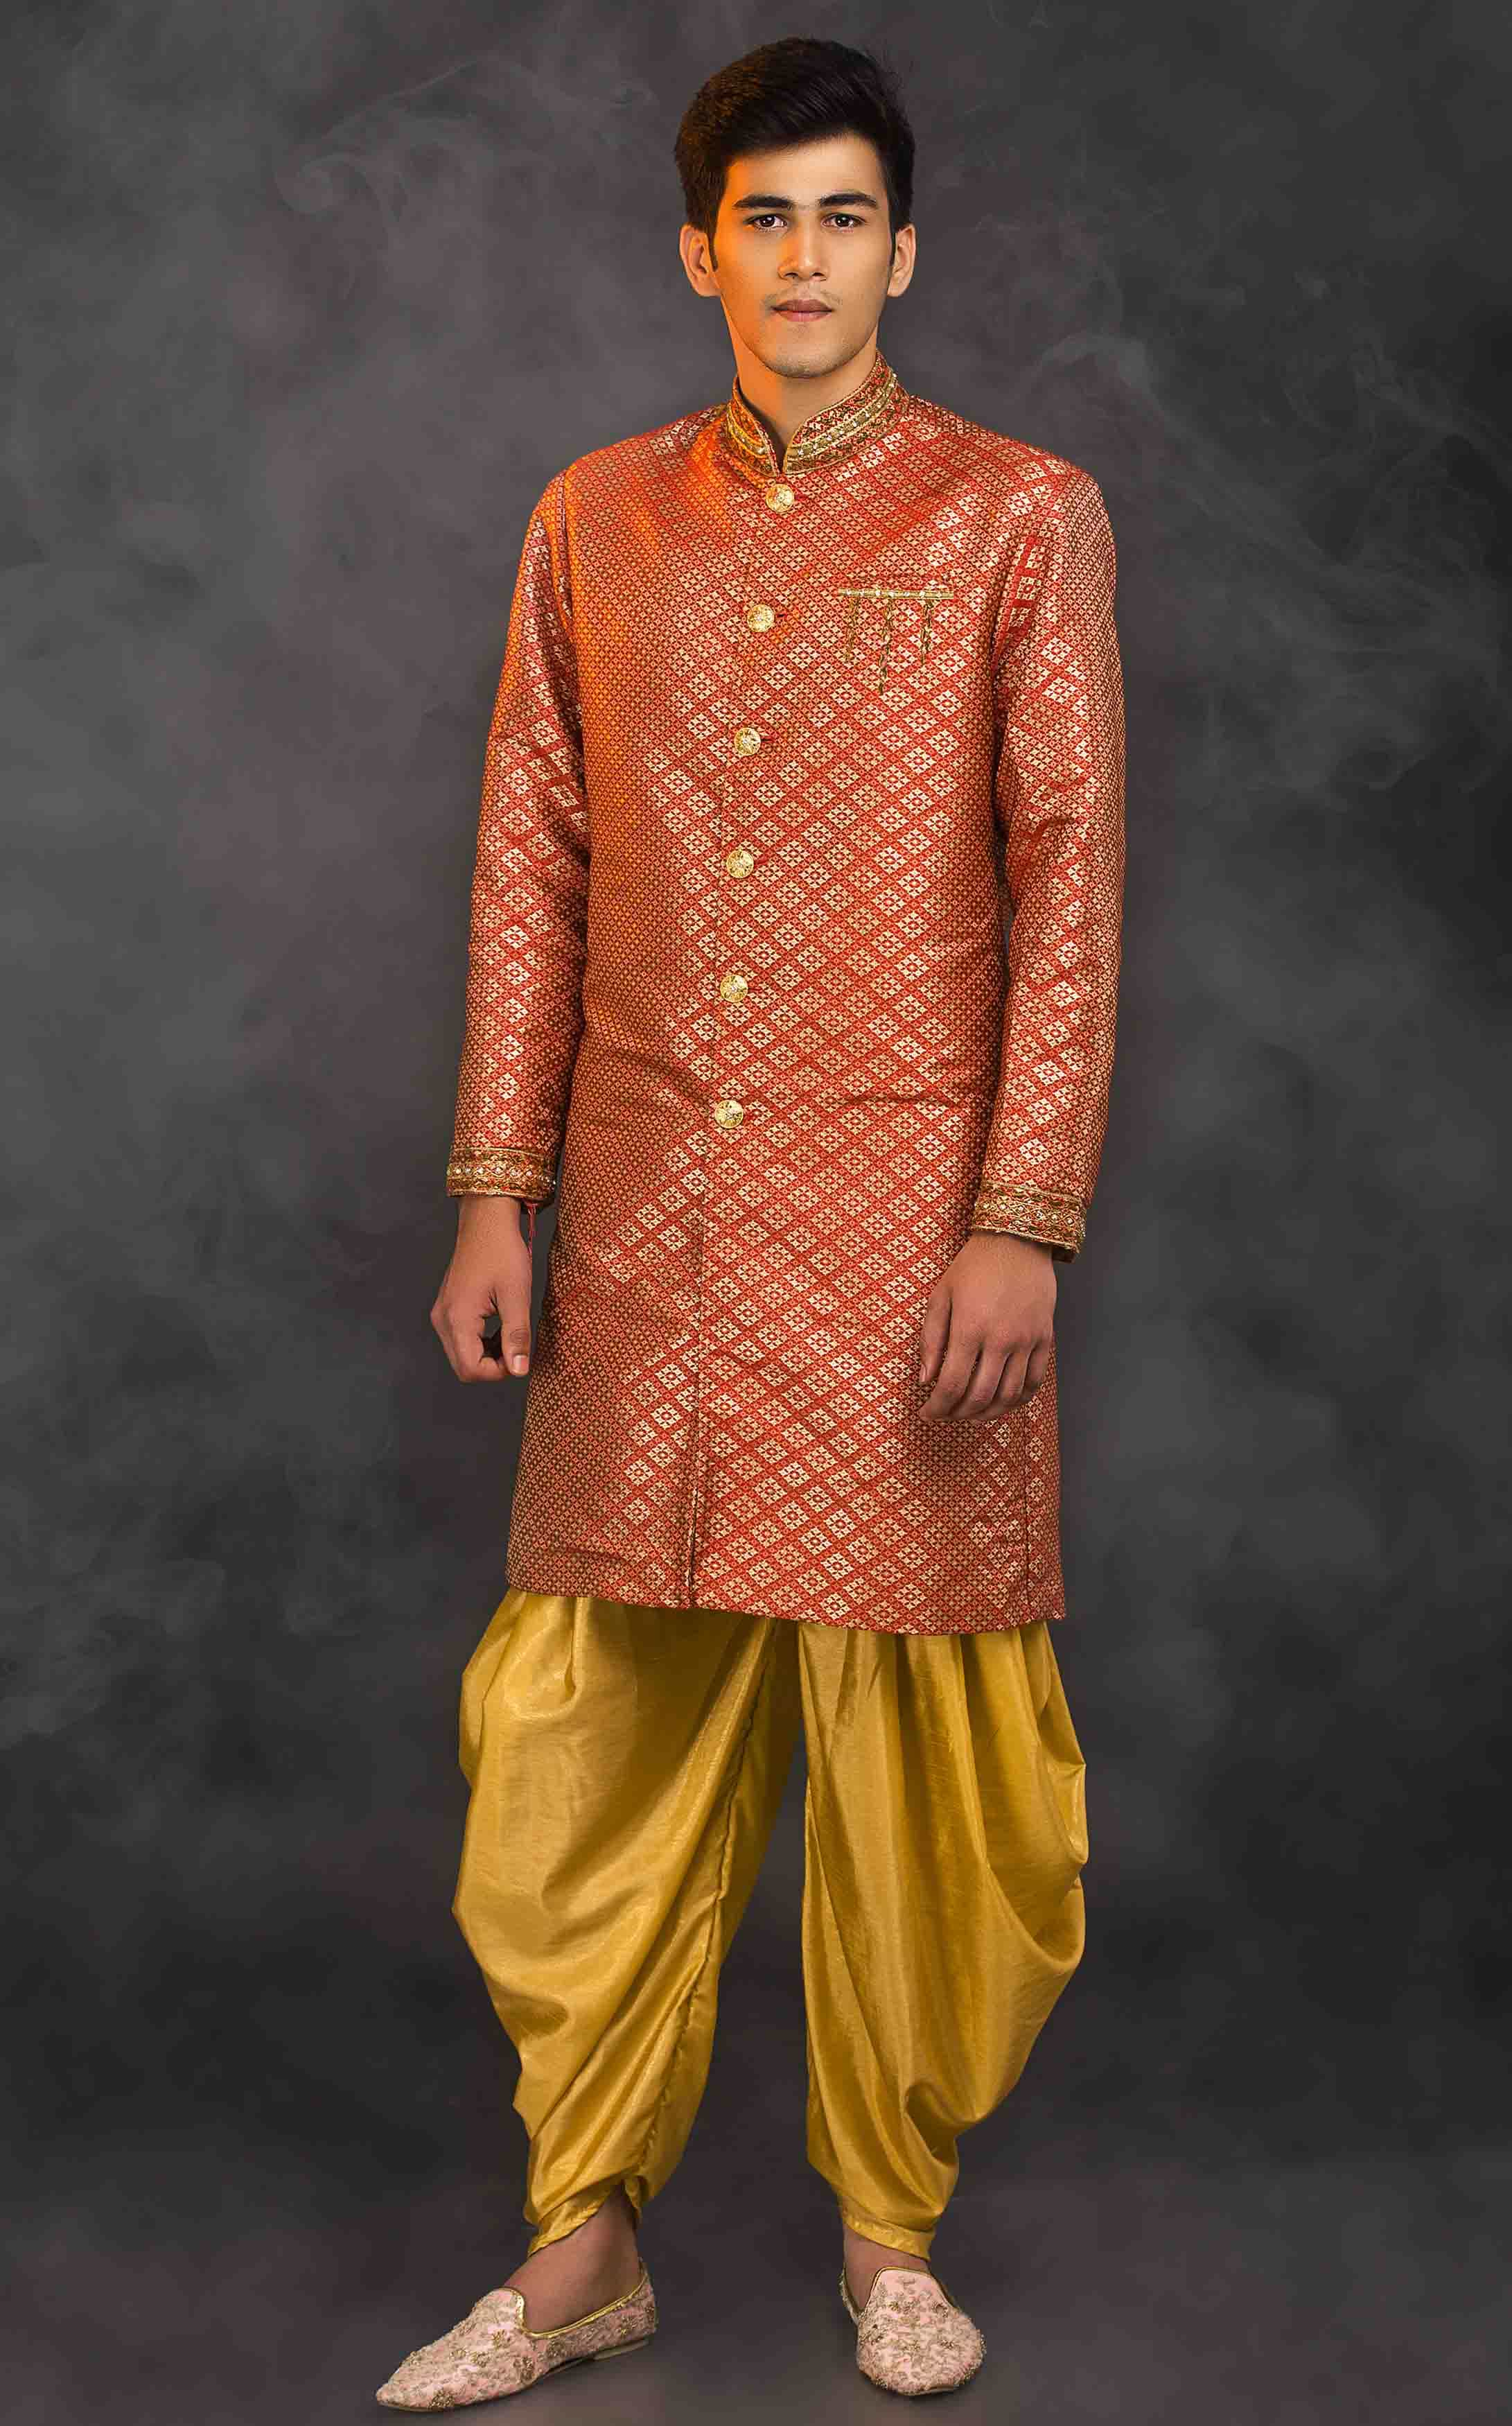 Brocade sherwani with dhoti pants